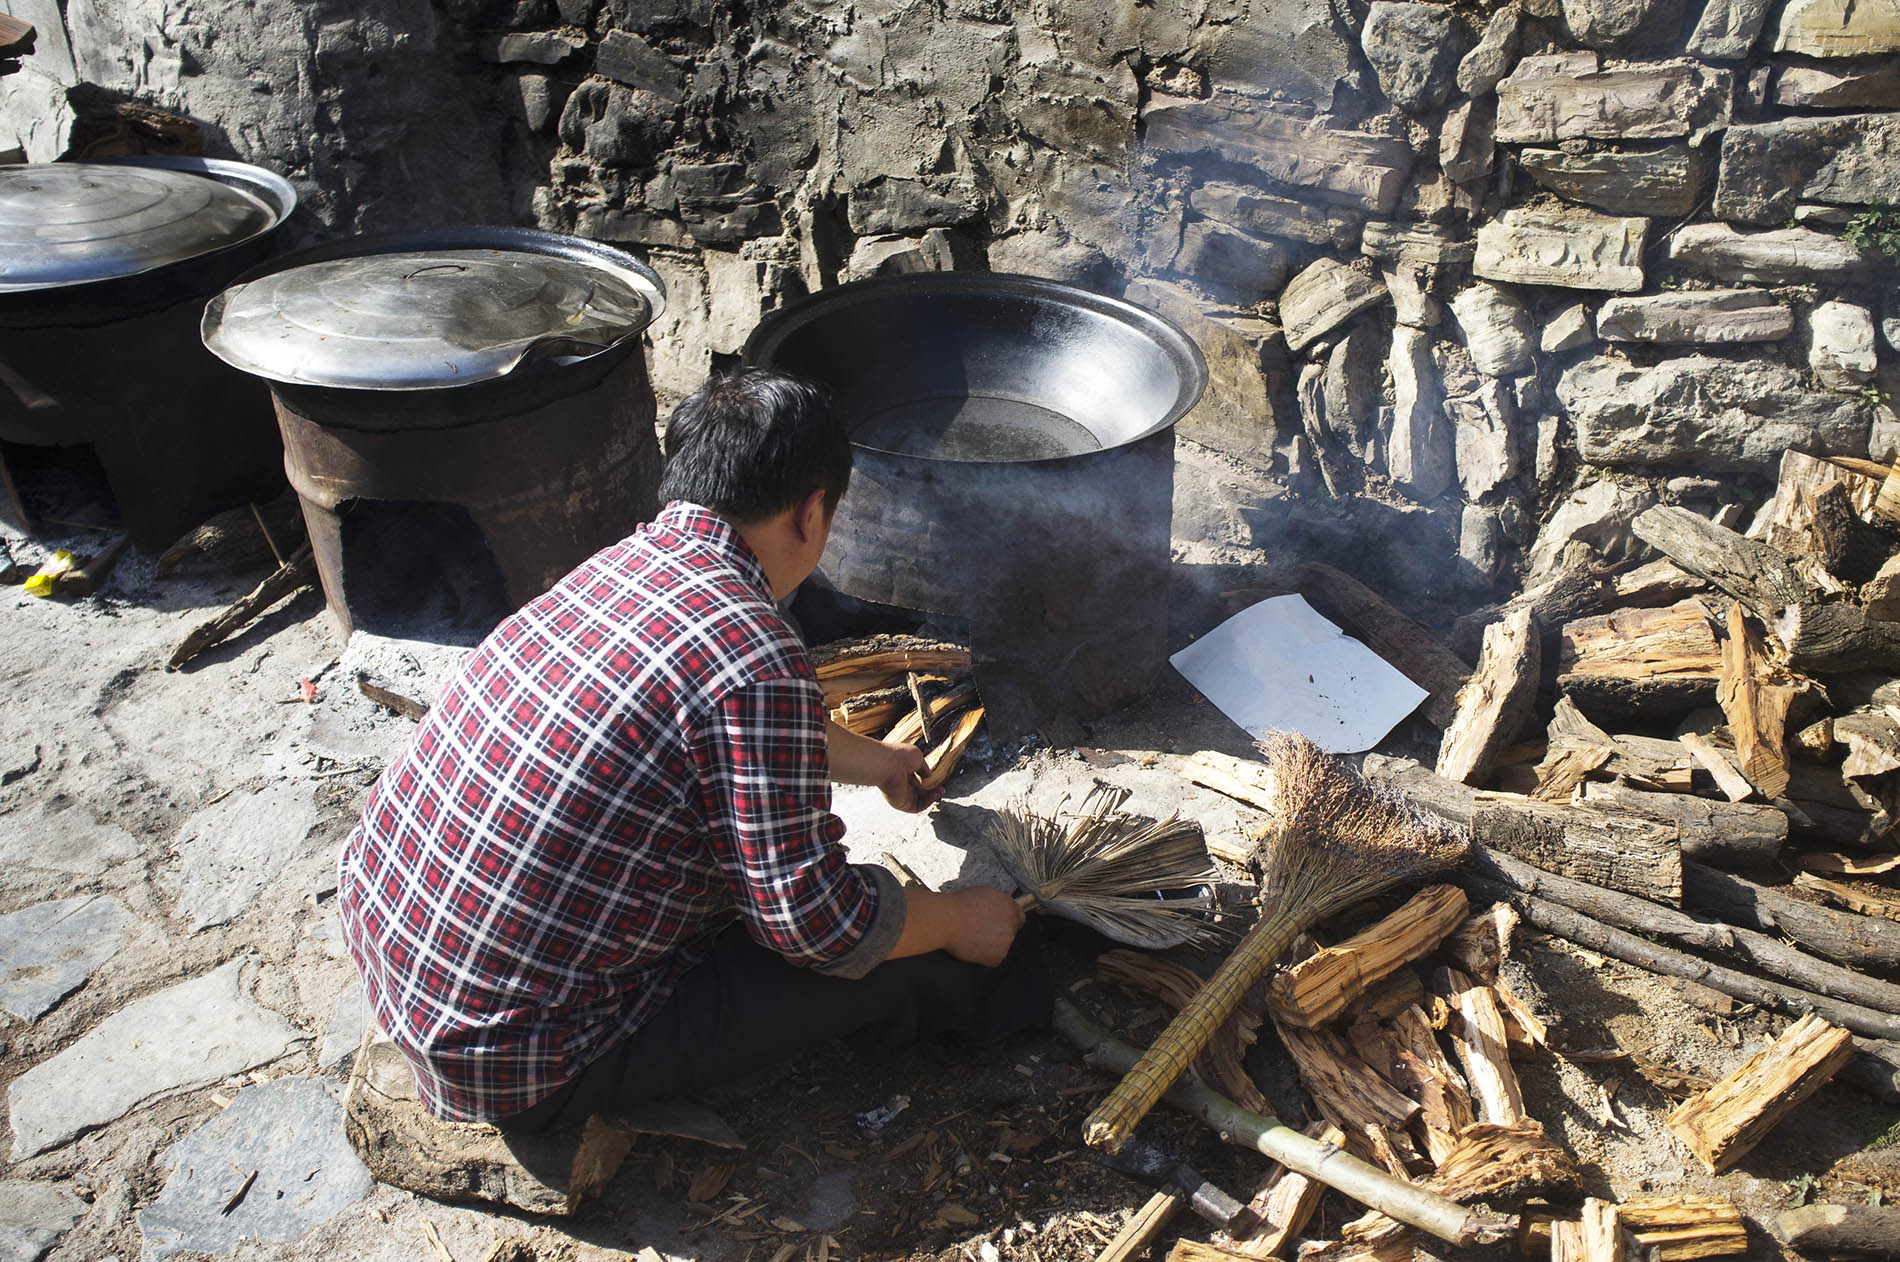 A man is getting the fire ready to make street food.